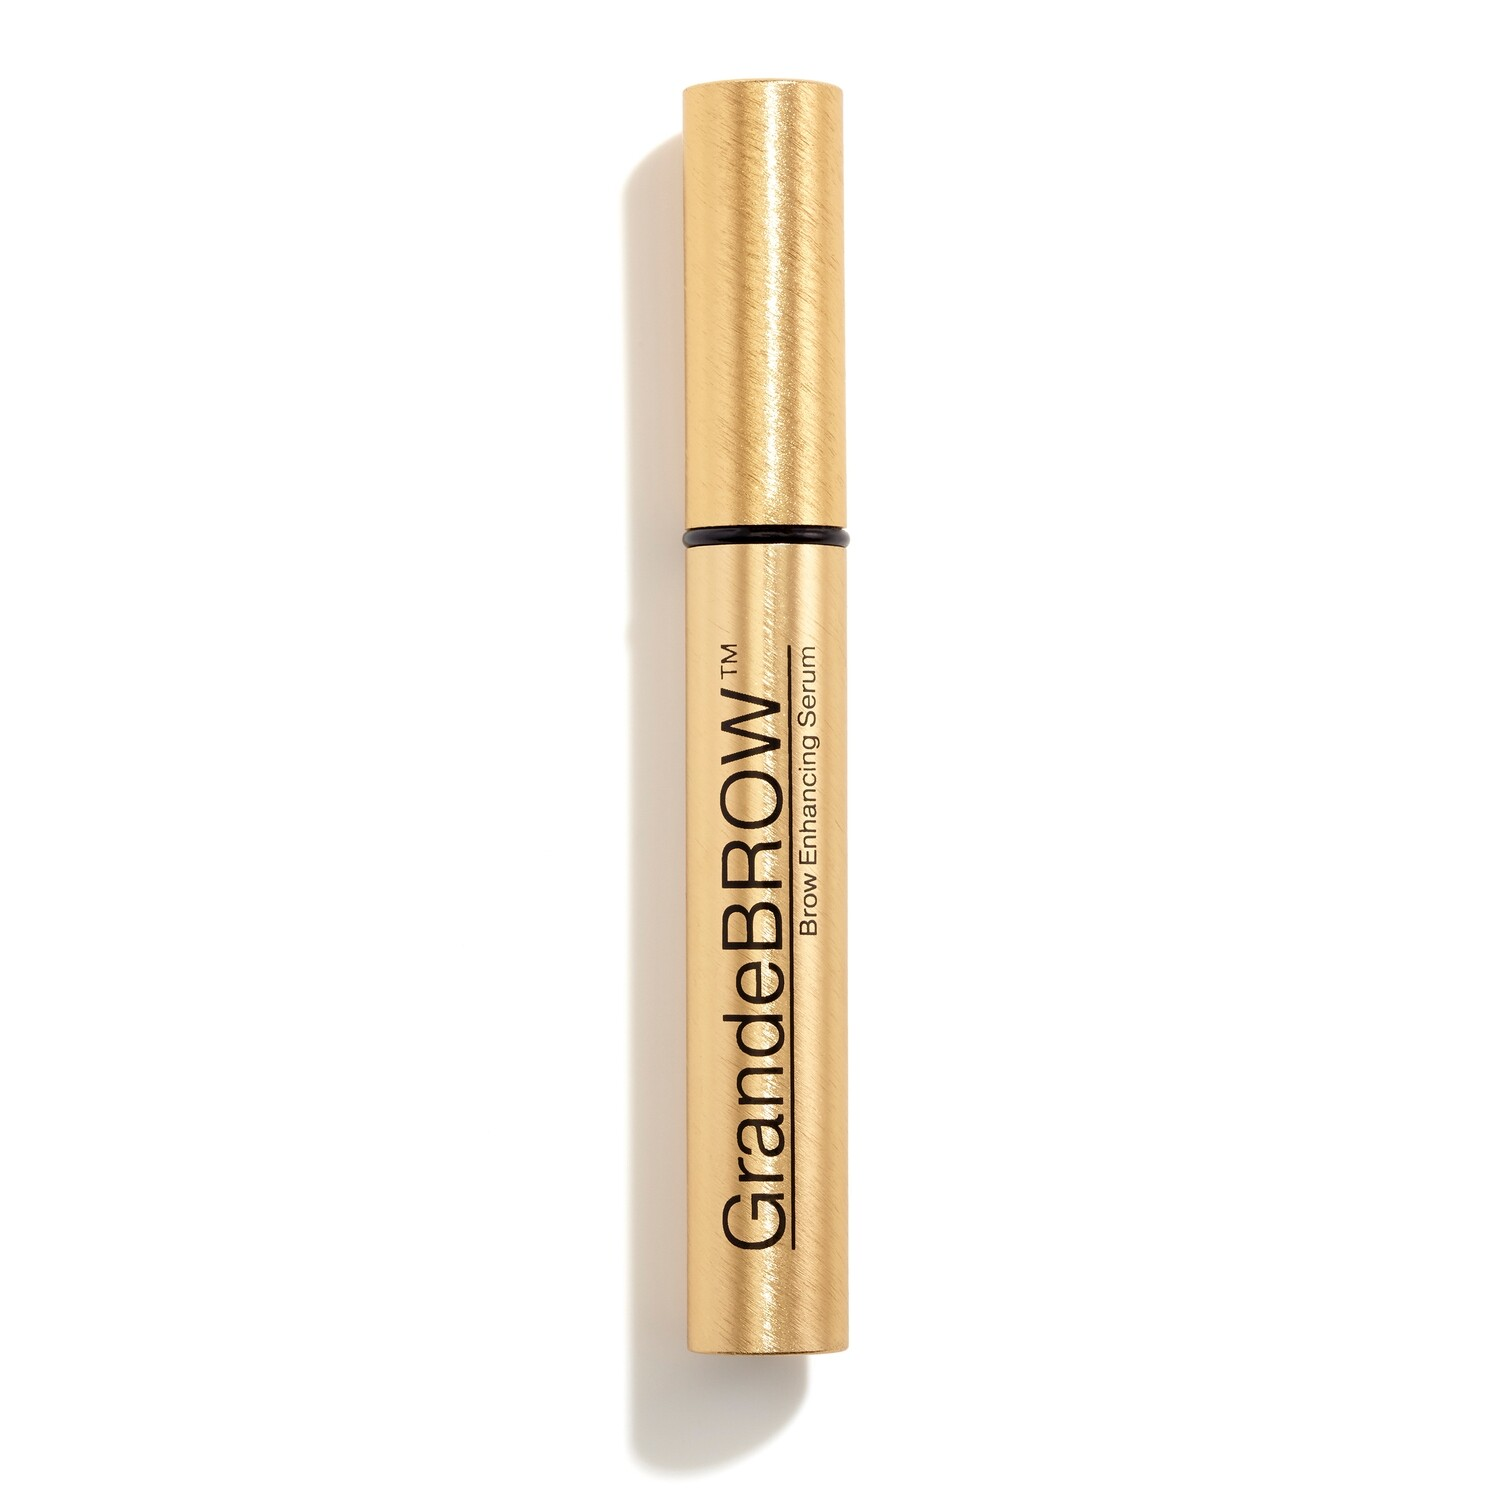 GrandeBROW Brow Enhancing Serum 3 ml